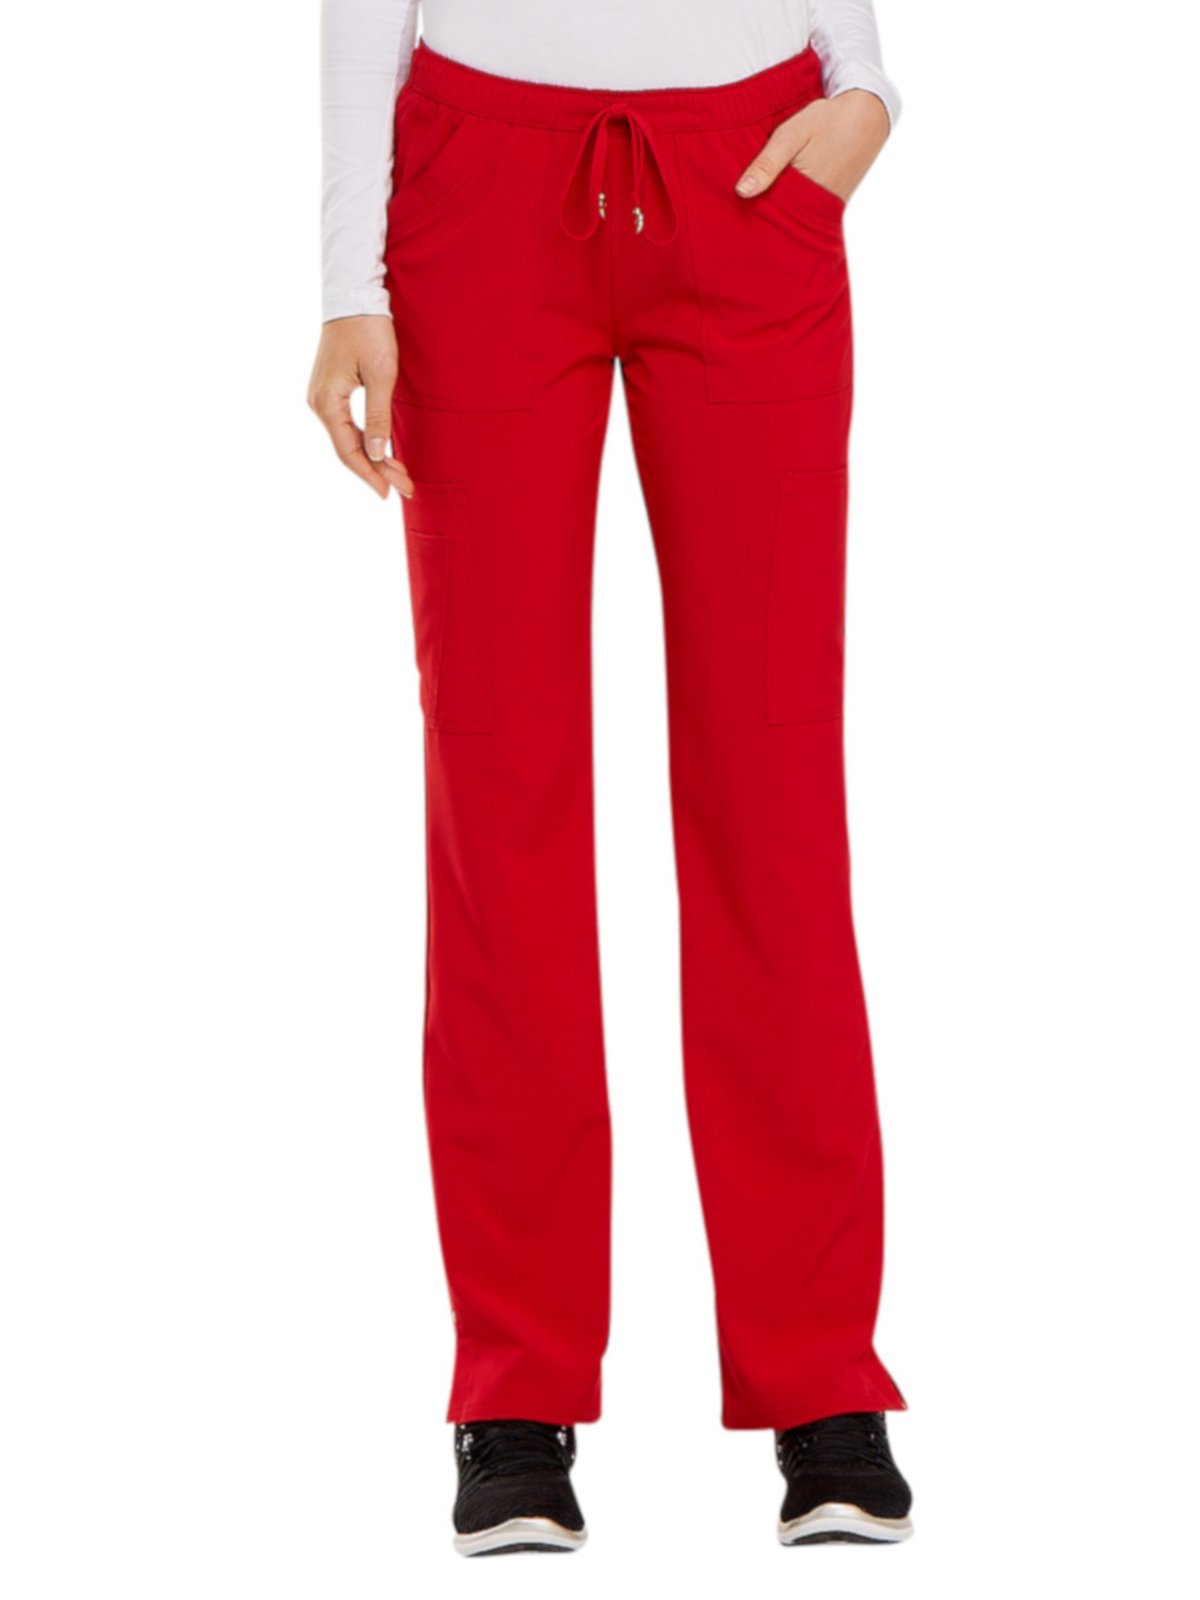 HeartSoul Love Always Women's Charmed Low Rise Drawstring Cargo Scrub Pant Small Tall Red